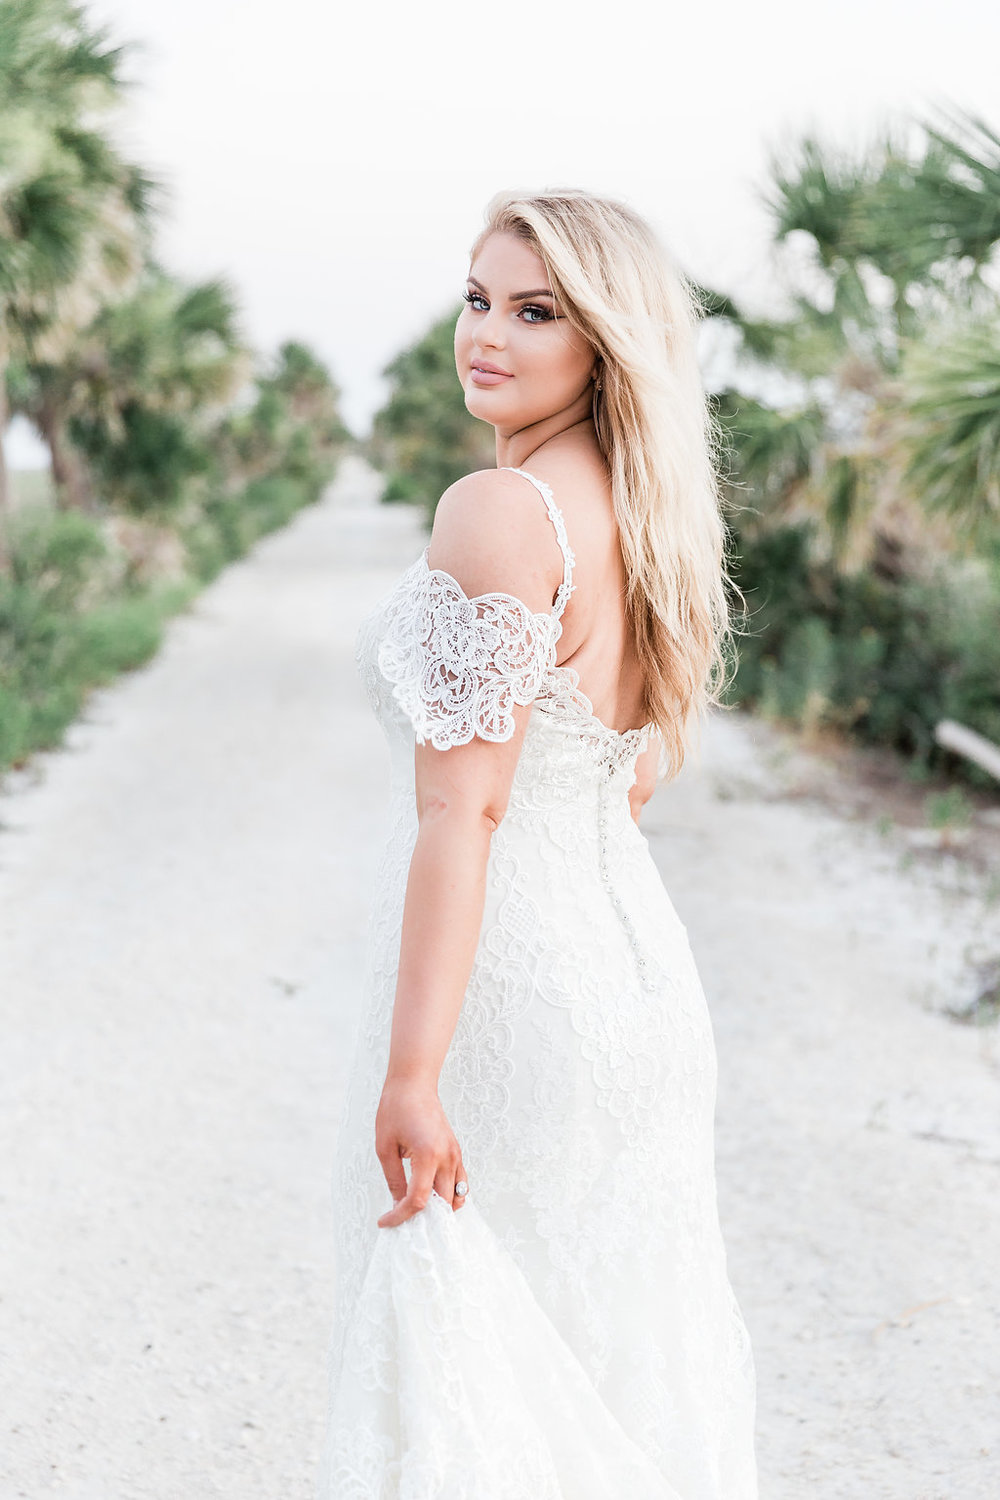 savannah-bridal-shop-beachy-bridal-glam-beach-wedding-looks-and-inspiration-southern-lens-photography-maggie-sottero-4.jpg